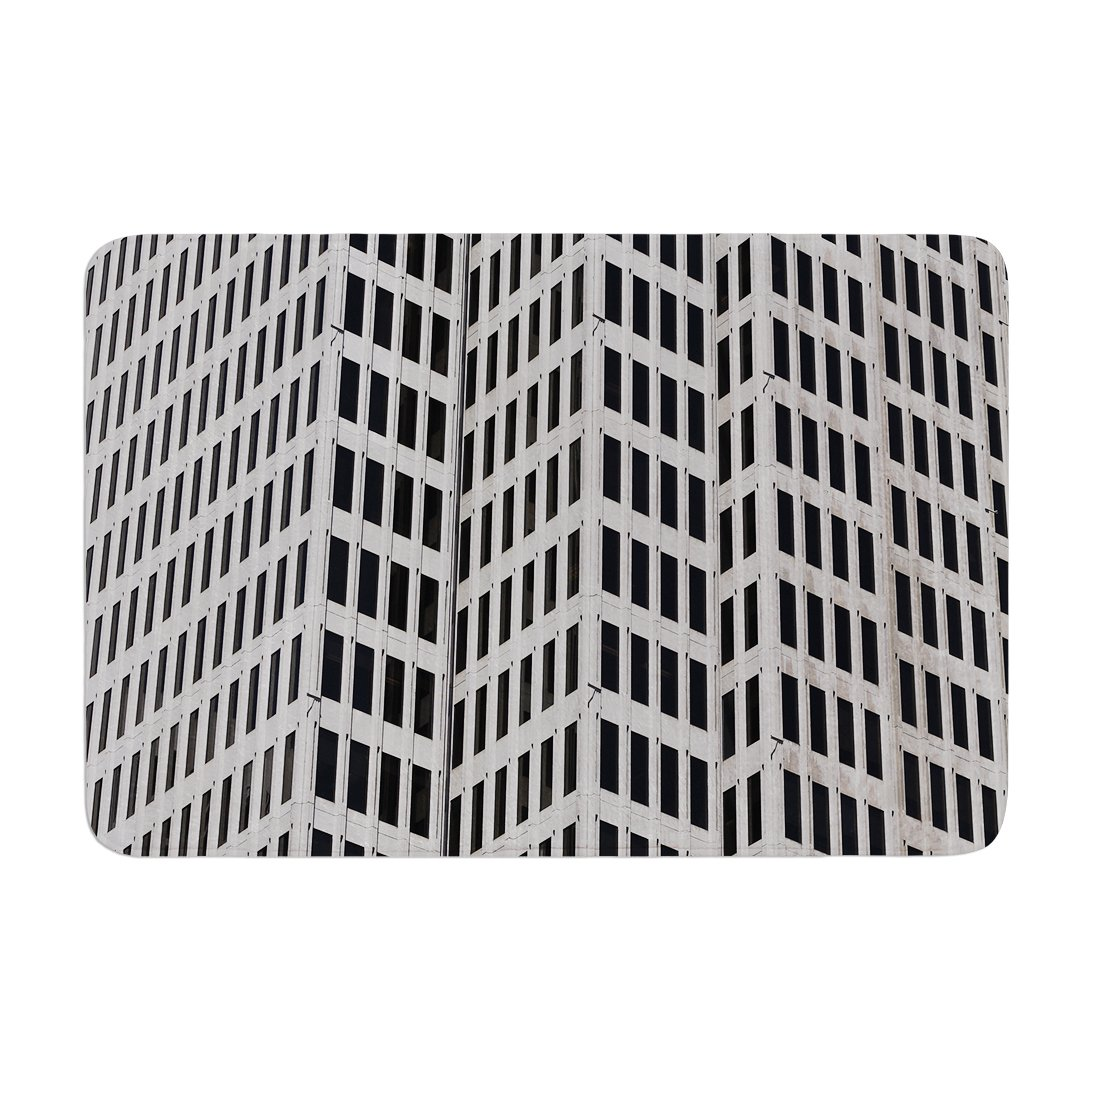 Kess InHouse Maynard Logan The Grid Memory Foam Bath Mat 17 by 24